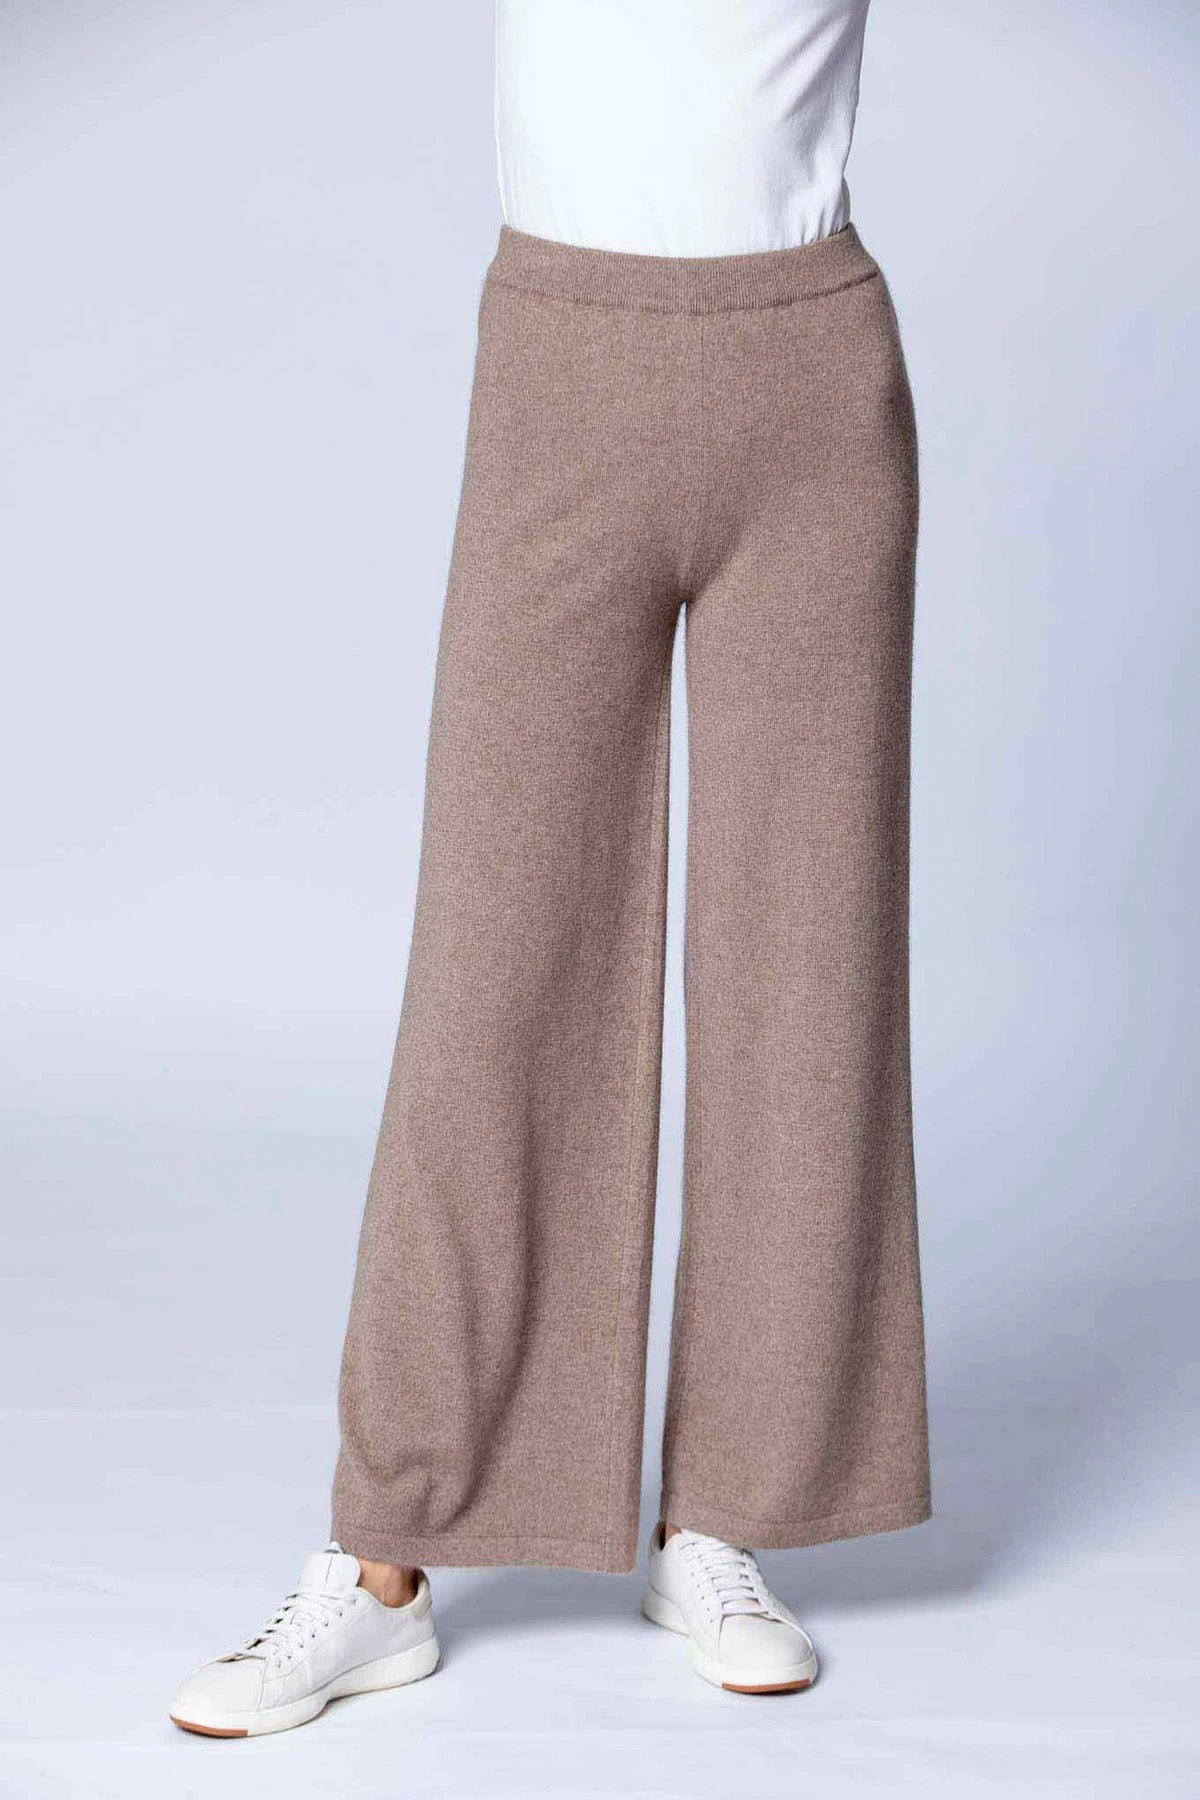 WOMEN'S WIDE PANTS